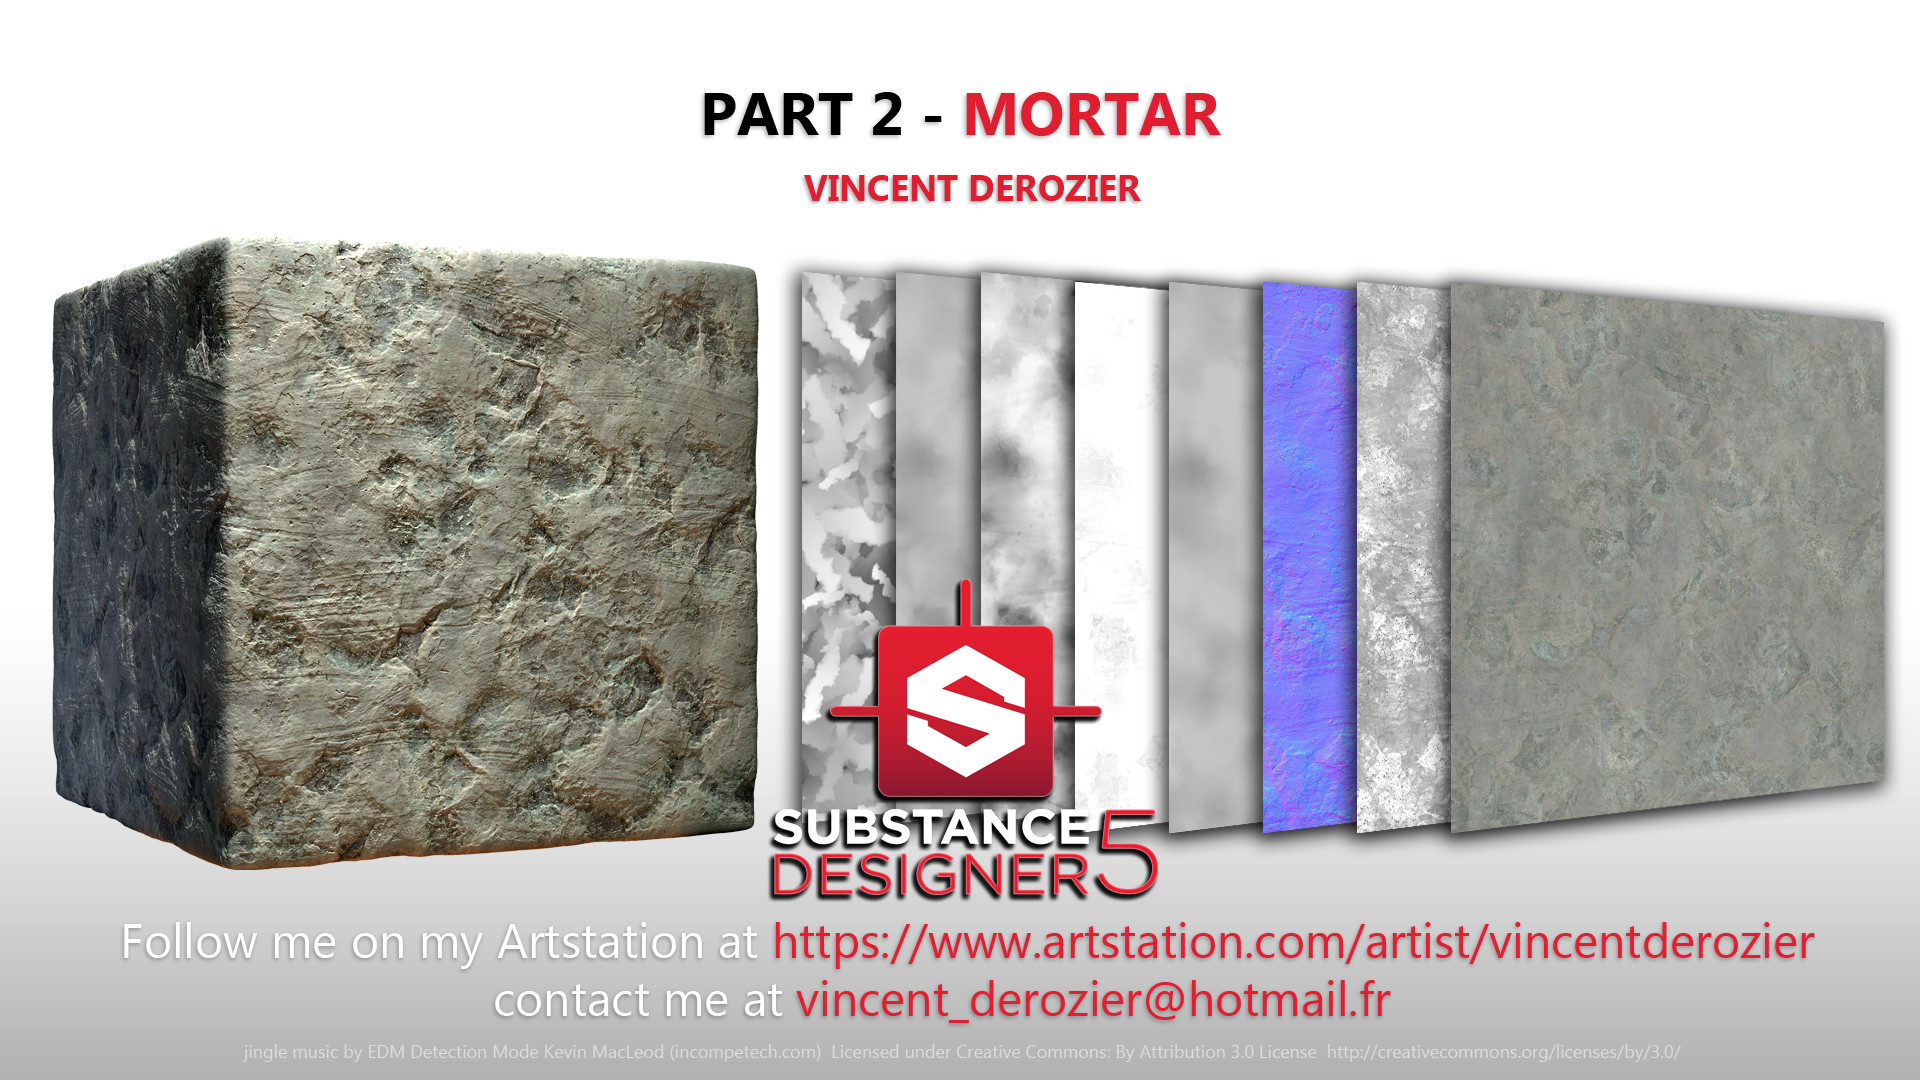 Vincent derozier part 2 mortar